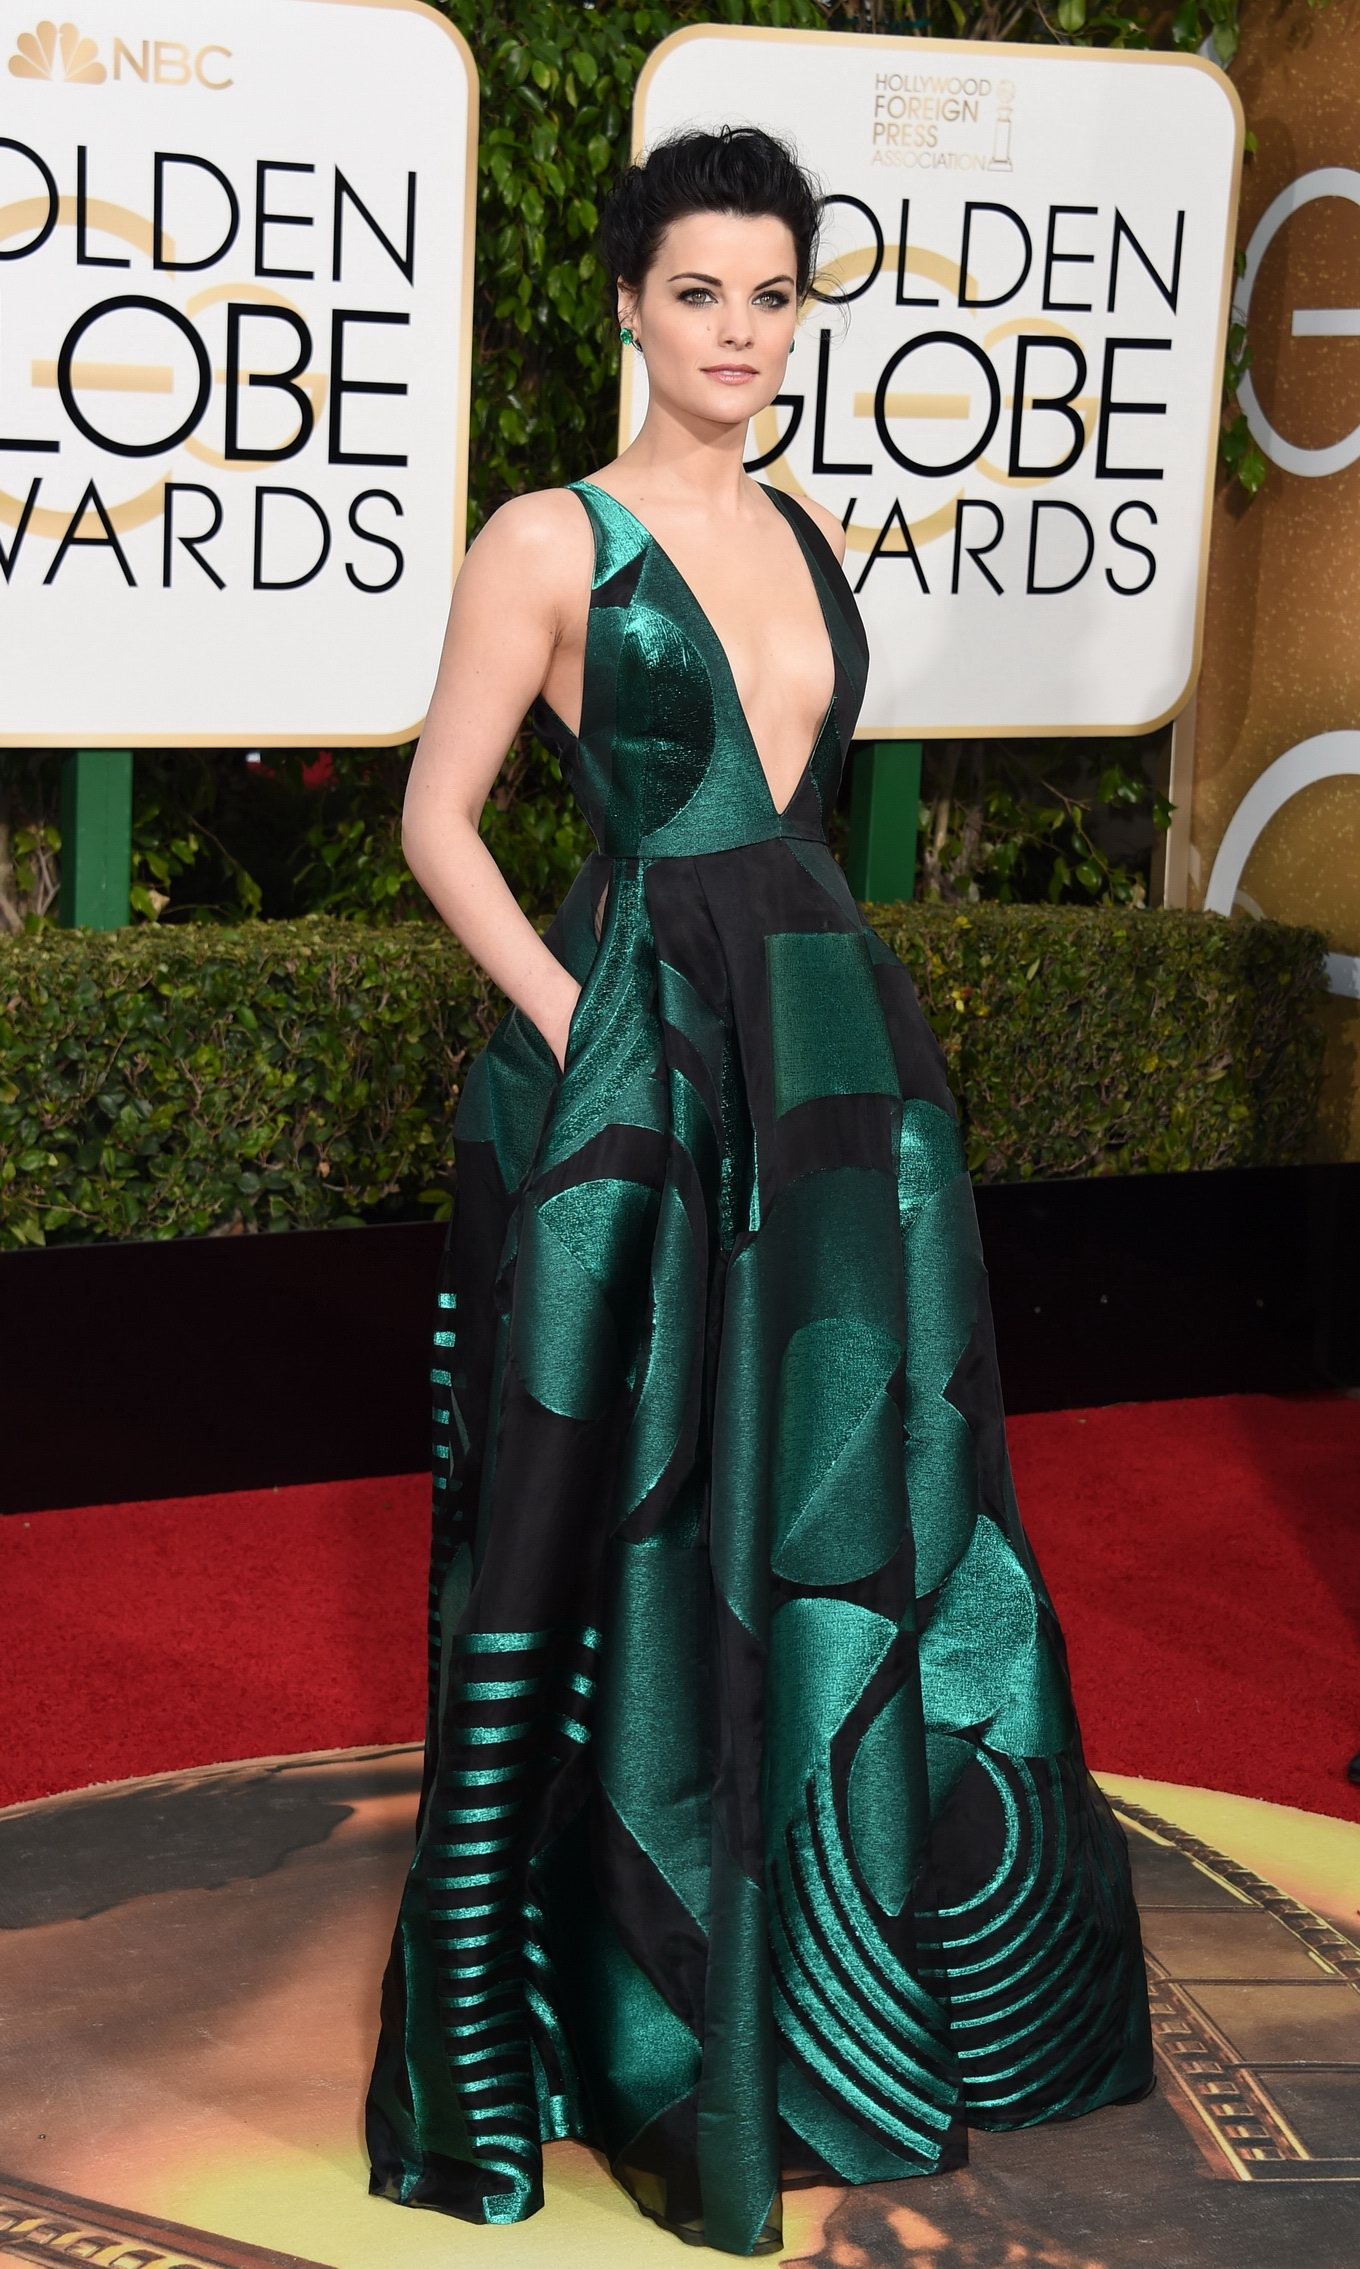 Jaime Alexander at Golden Globes Awards 2016